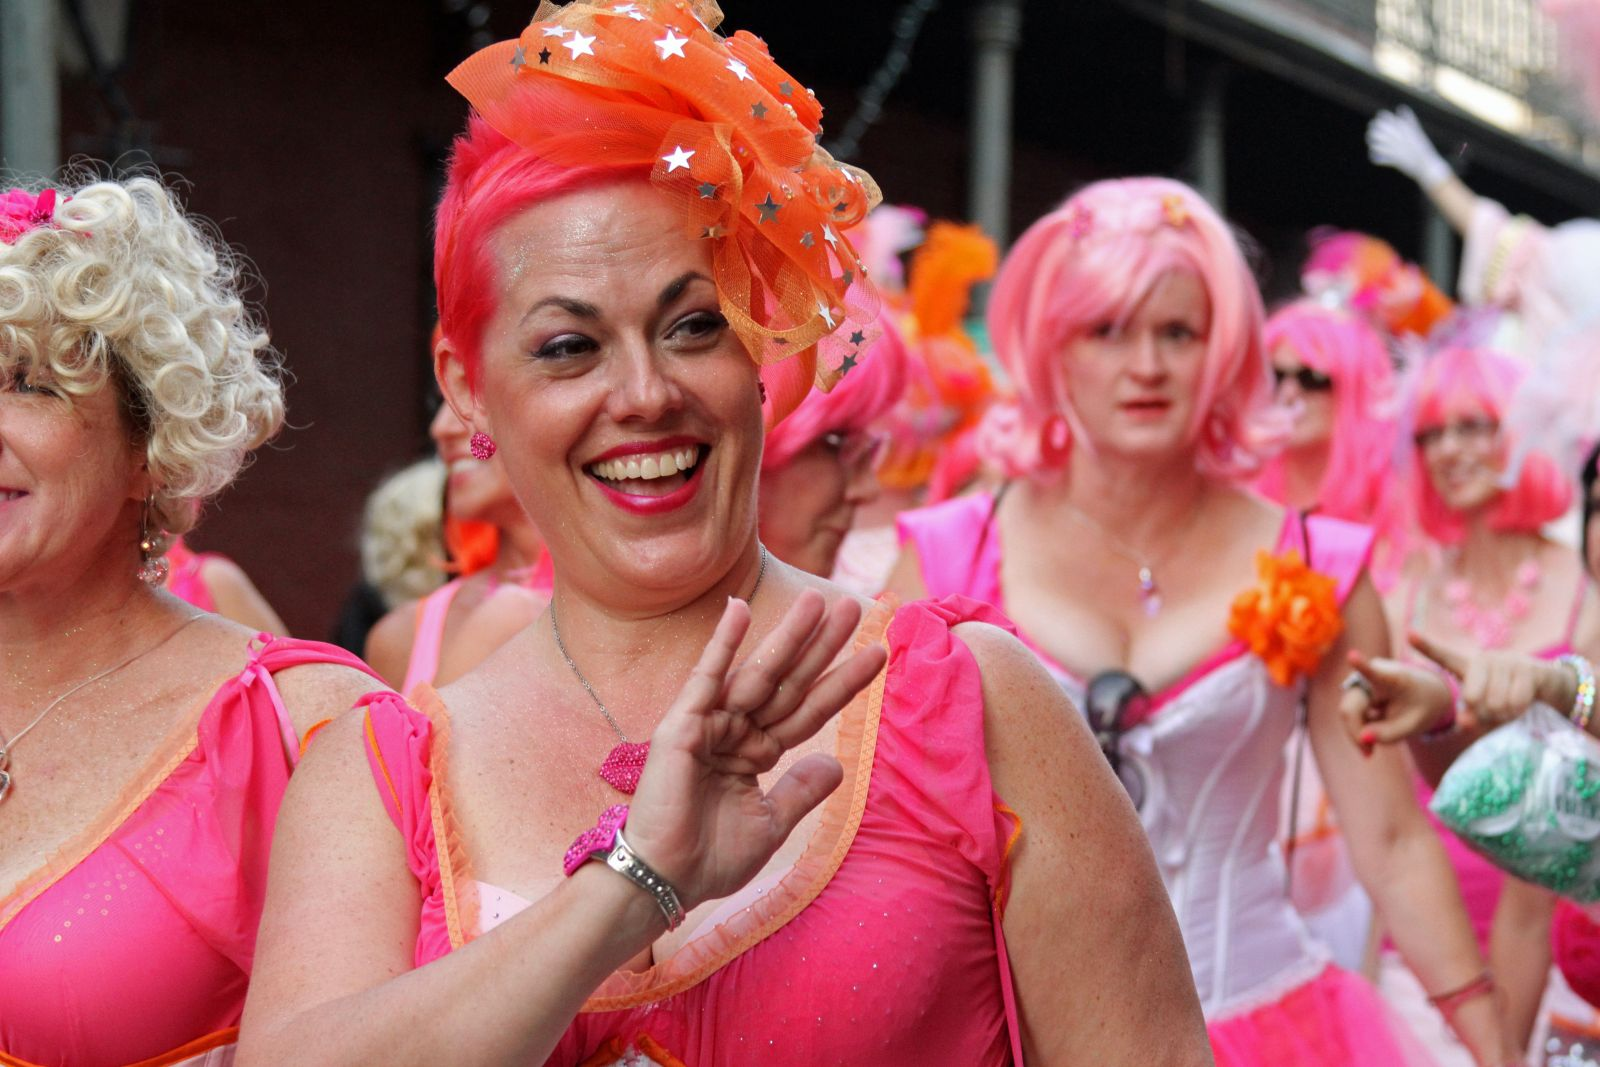 New Orlean's Festigals Saturday's stiletto stroll is a highlight as women dressed head to toe in pink danced to music in high heels and hot pink wigs through the French Quarter … and of course there was a lot of bead throwing. (Photo: Courtesy of www.experienceneworleans.com)